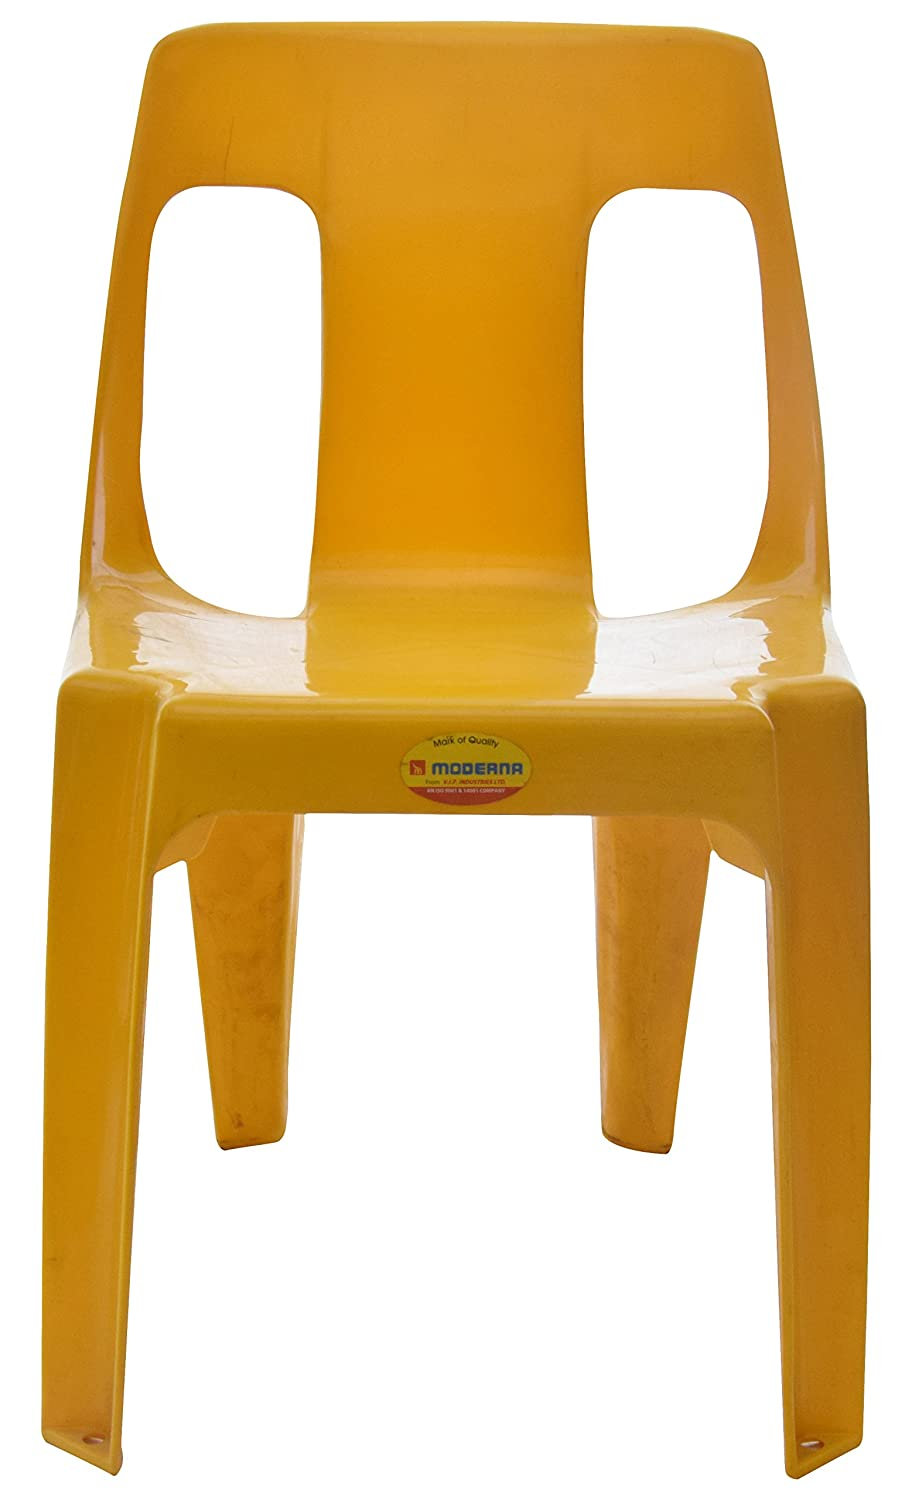 Moderna armless chair yellow amazon in home kitchen